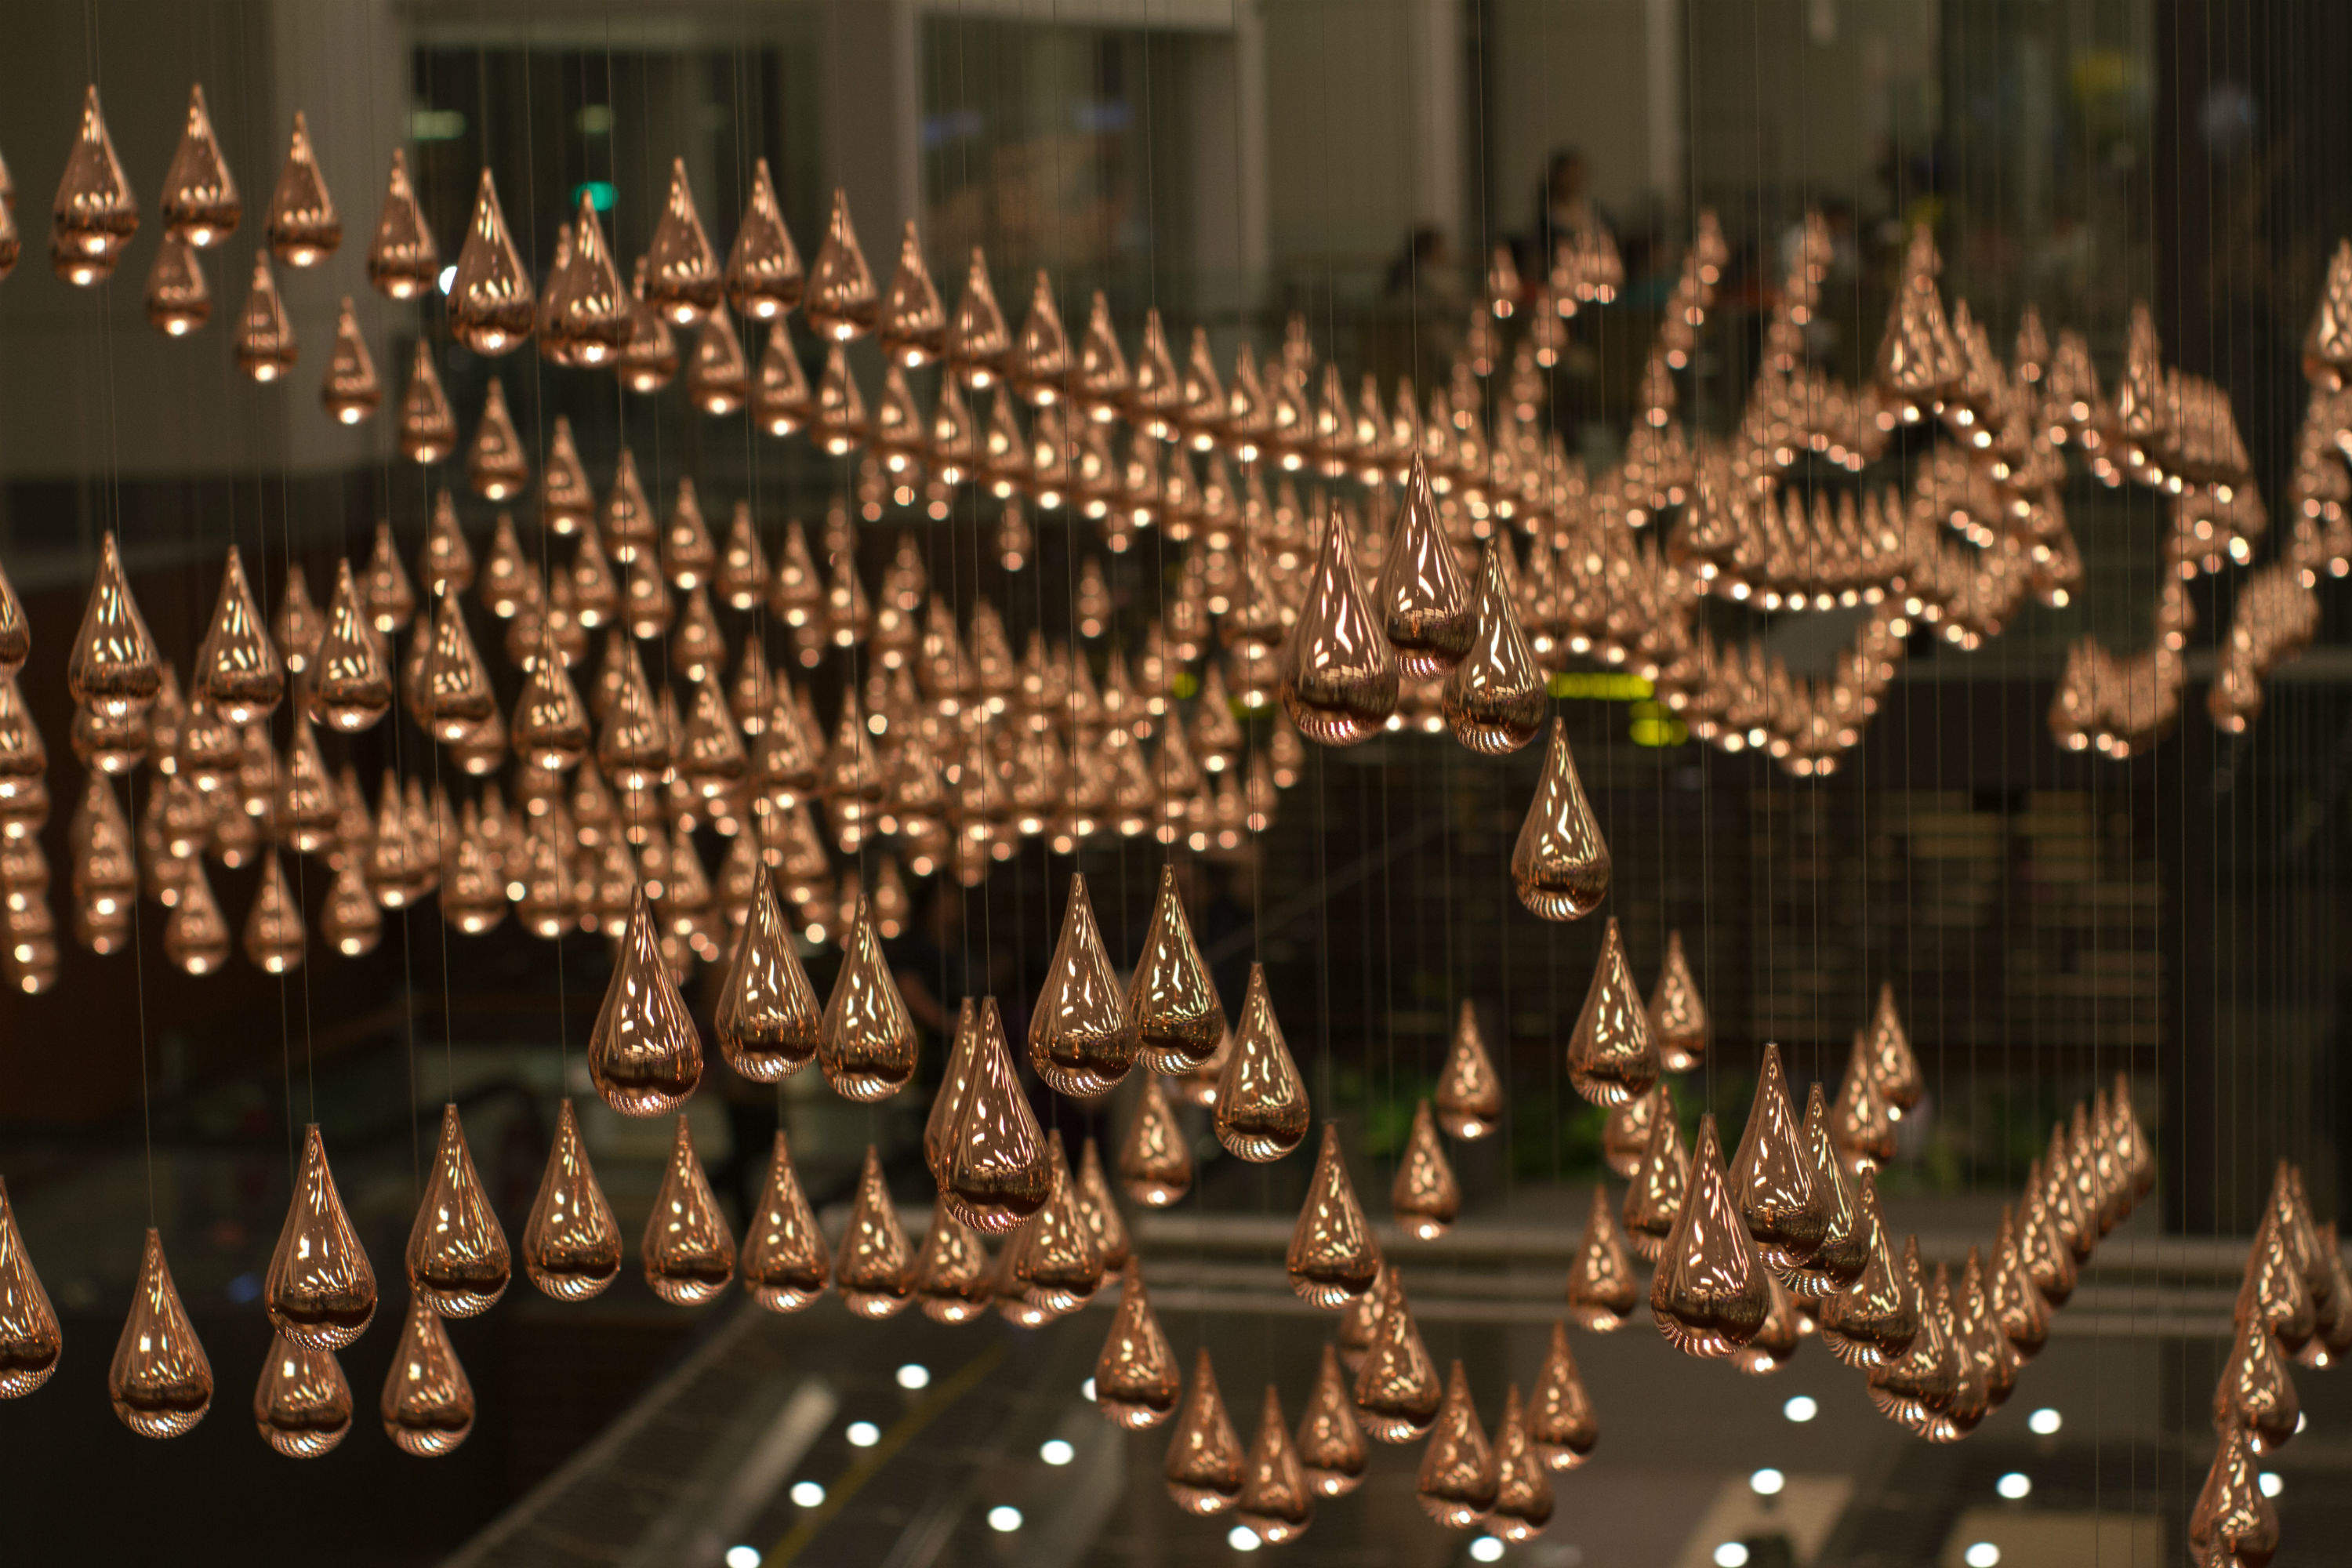 Singapore Changi Airport, Kinetic Rain